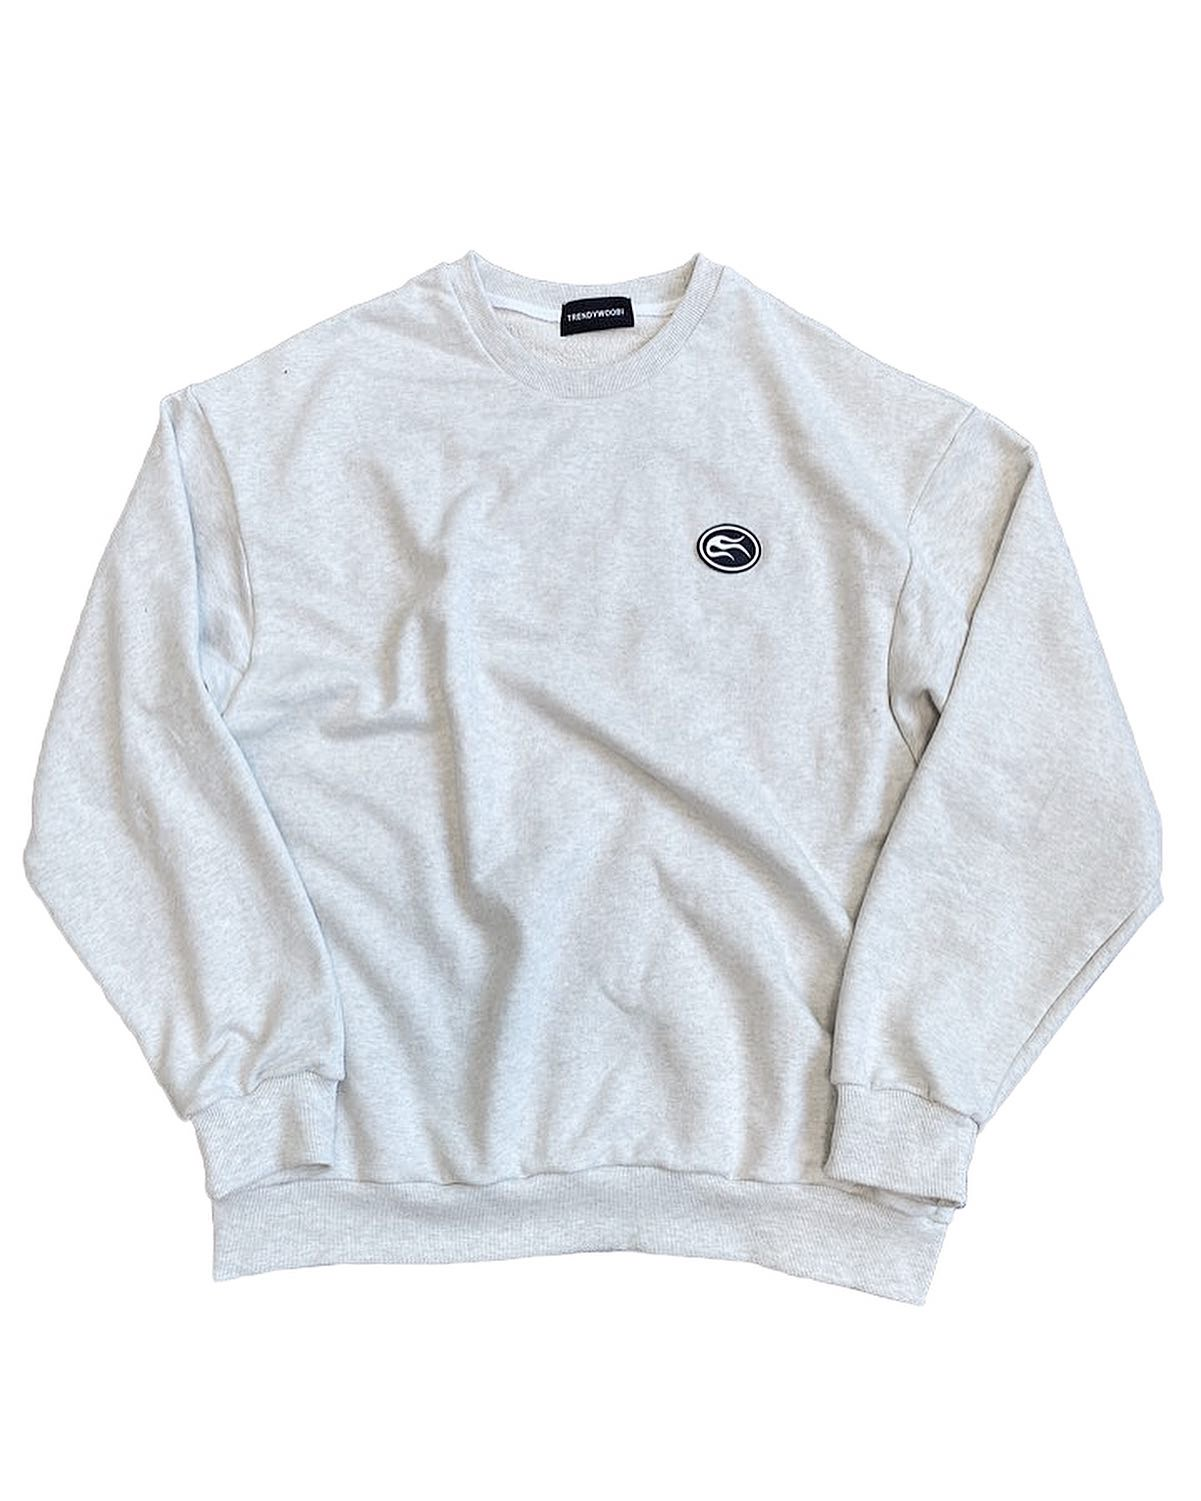 Sweat shirt oatmeal